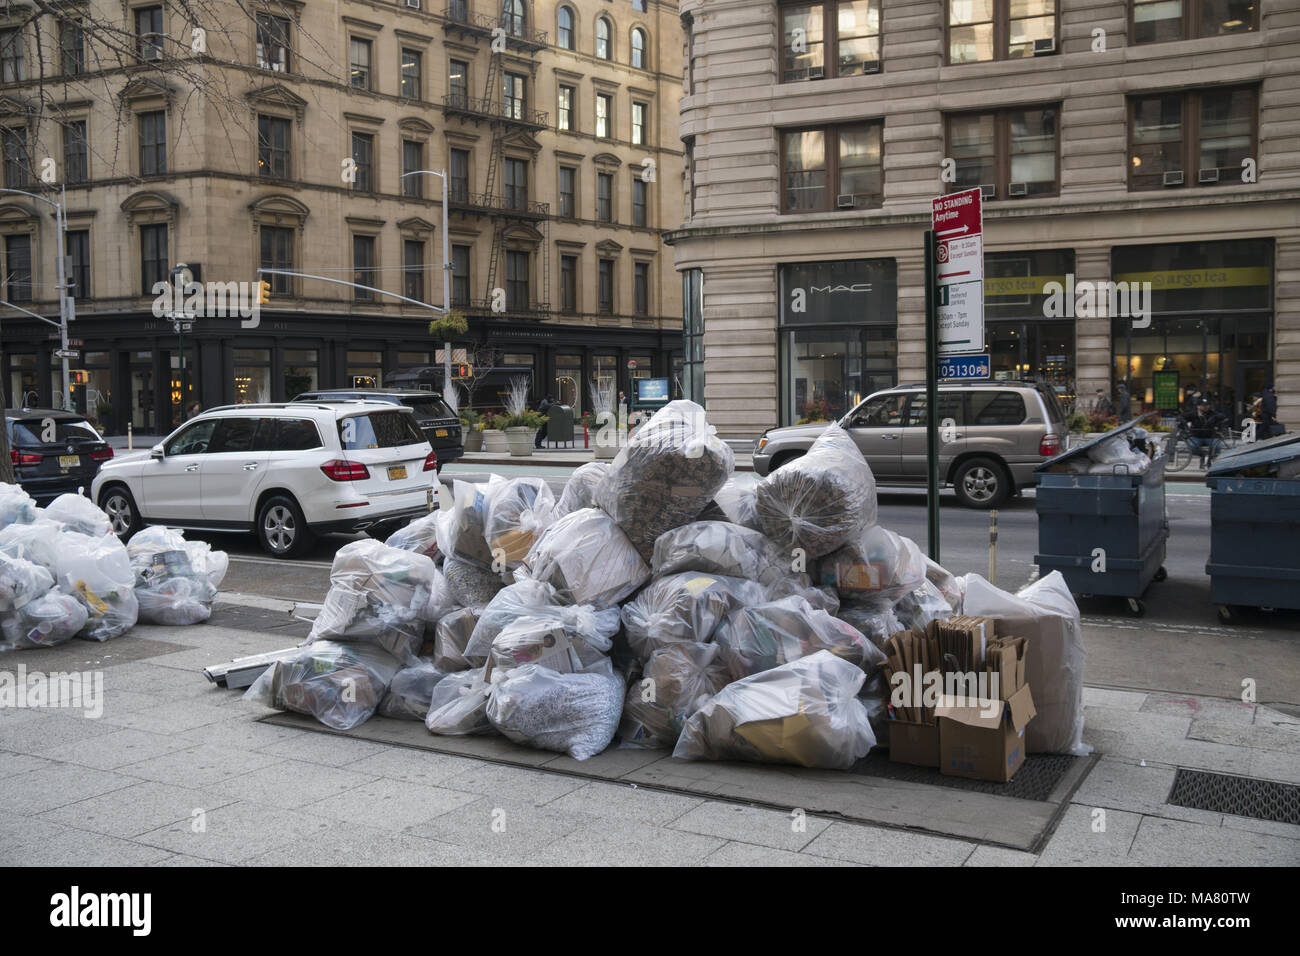 Clear bagged recyclable garbage on the street ready for pick-up on Broadway by the landmark Flatiron Building. Manhattan has virtually no alleys so most garbage is put out on the street. (Very unsightly) - Stock Image